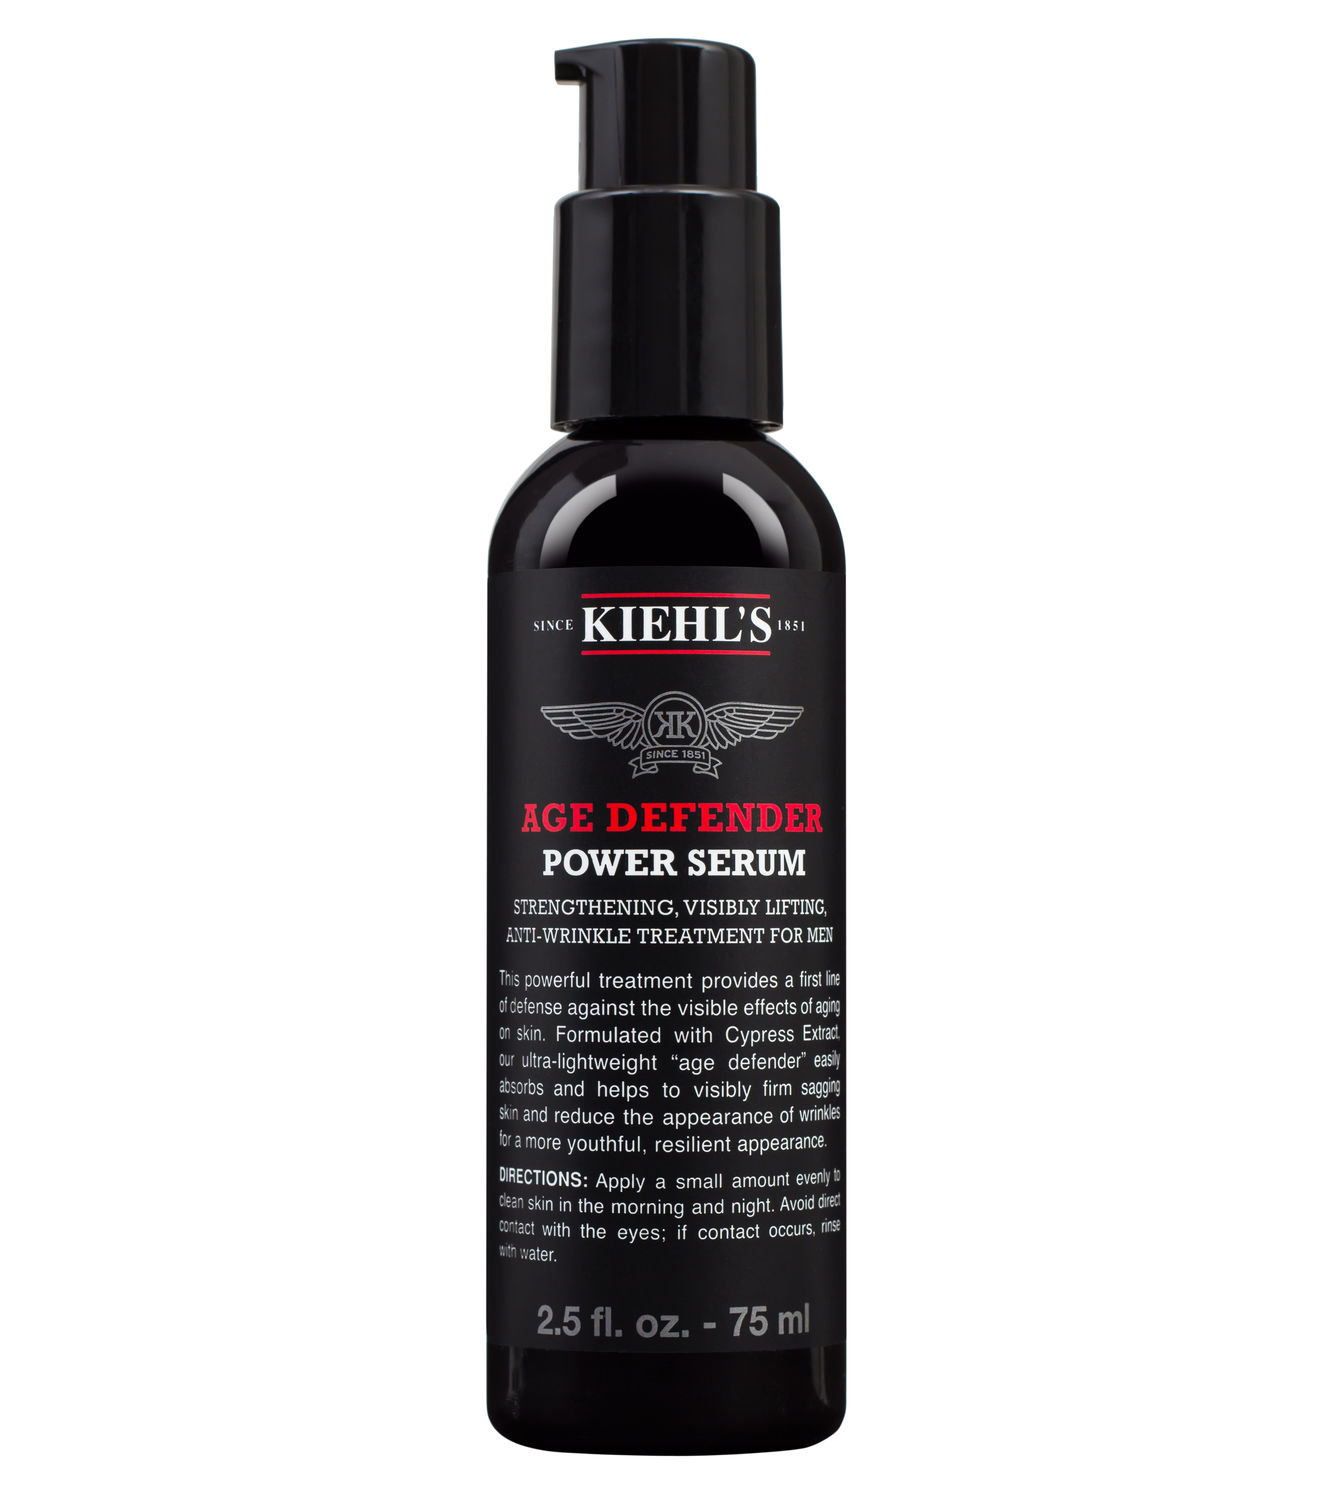 AgeDefender_PowerSerum_75ml.jpg